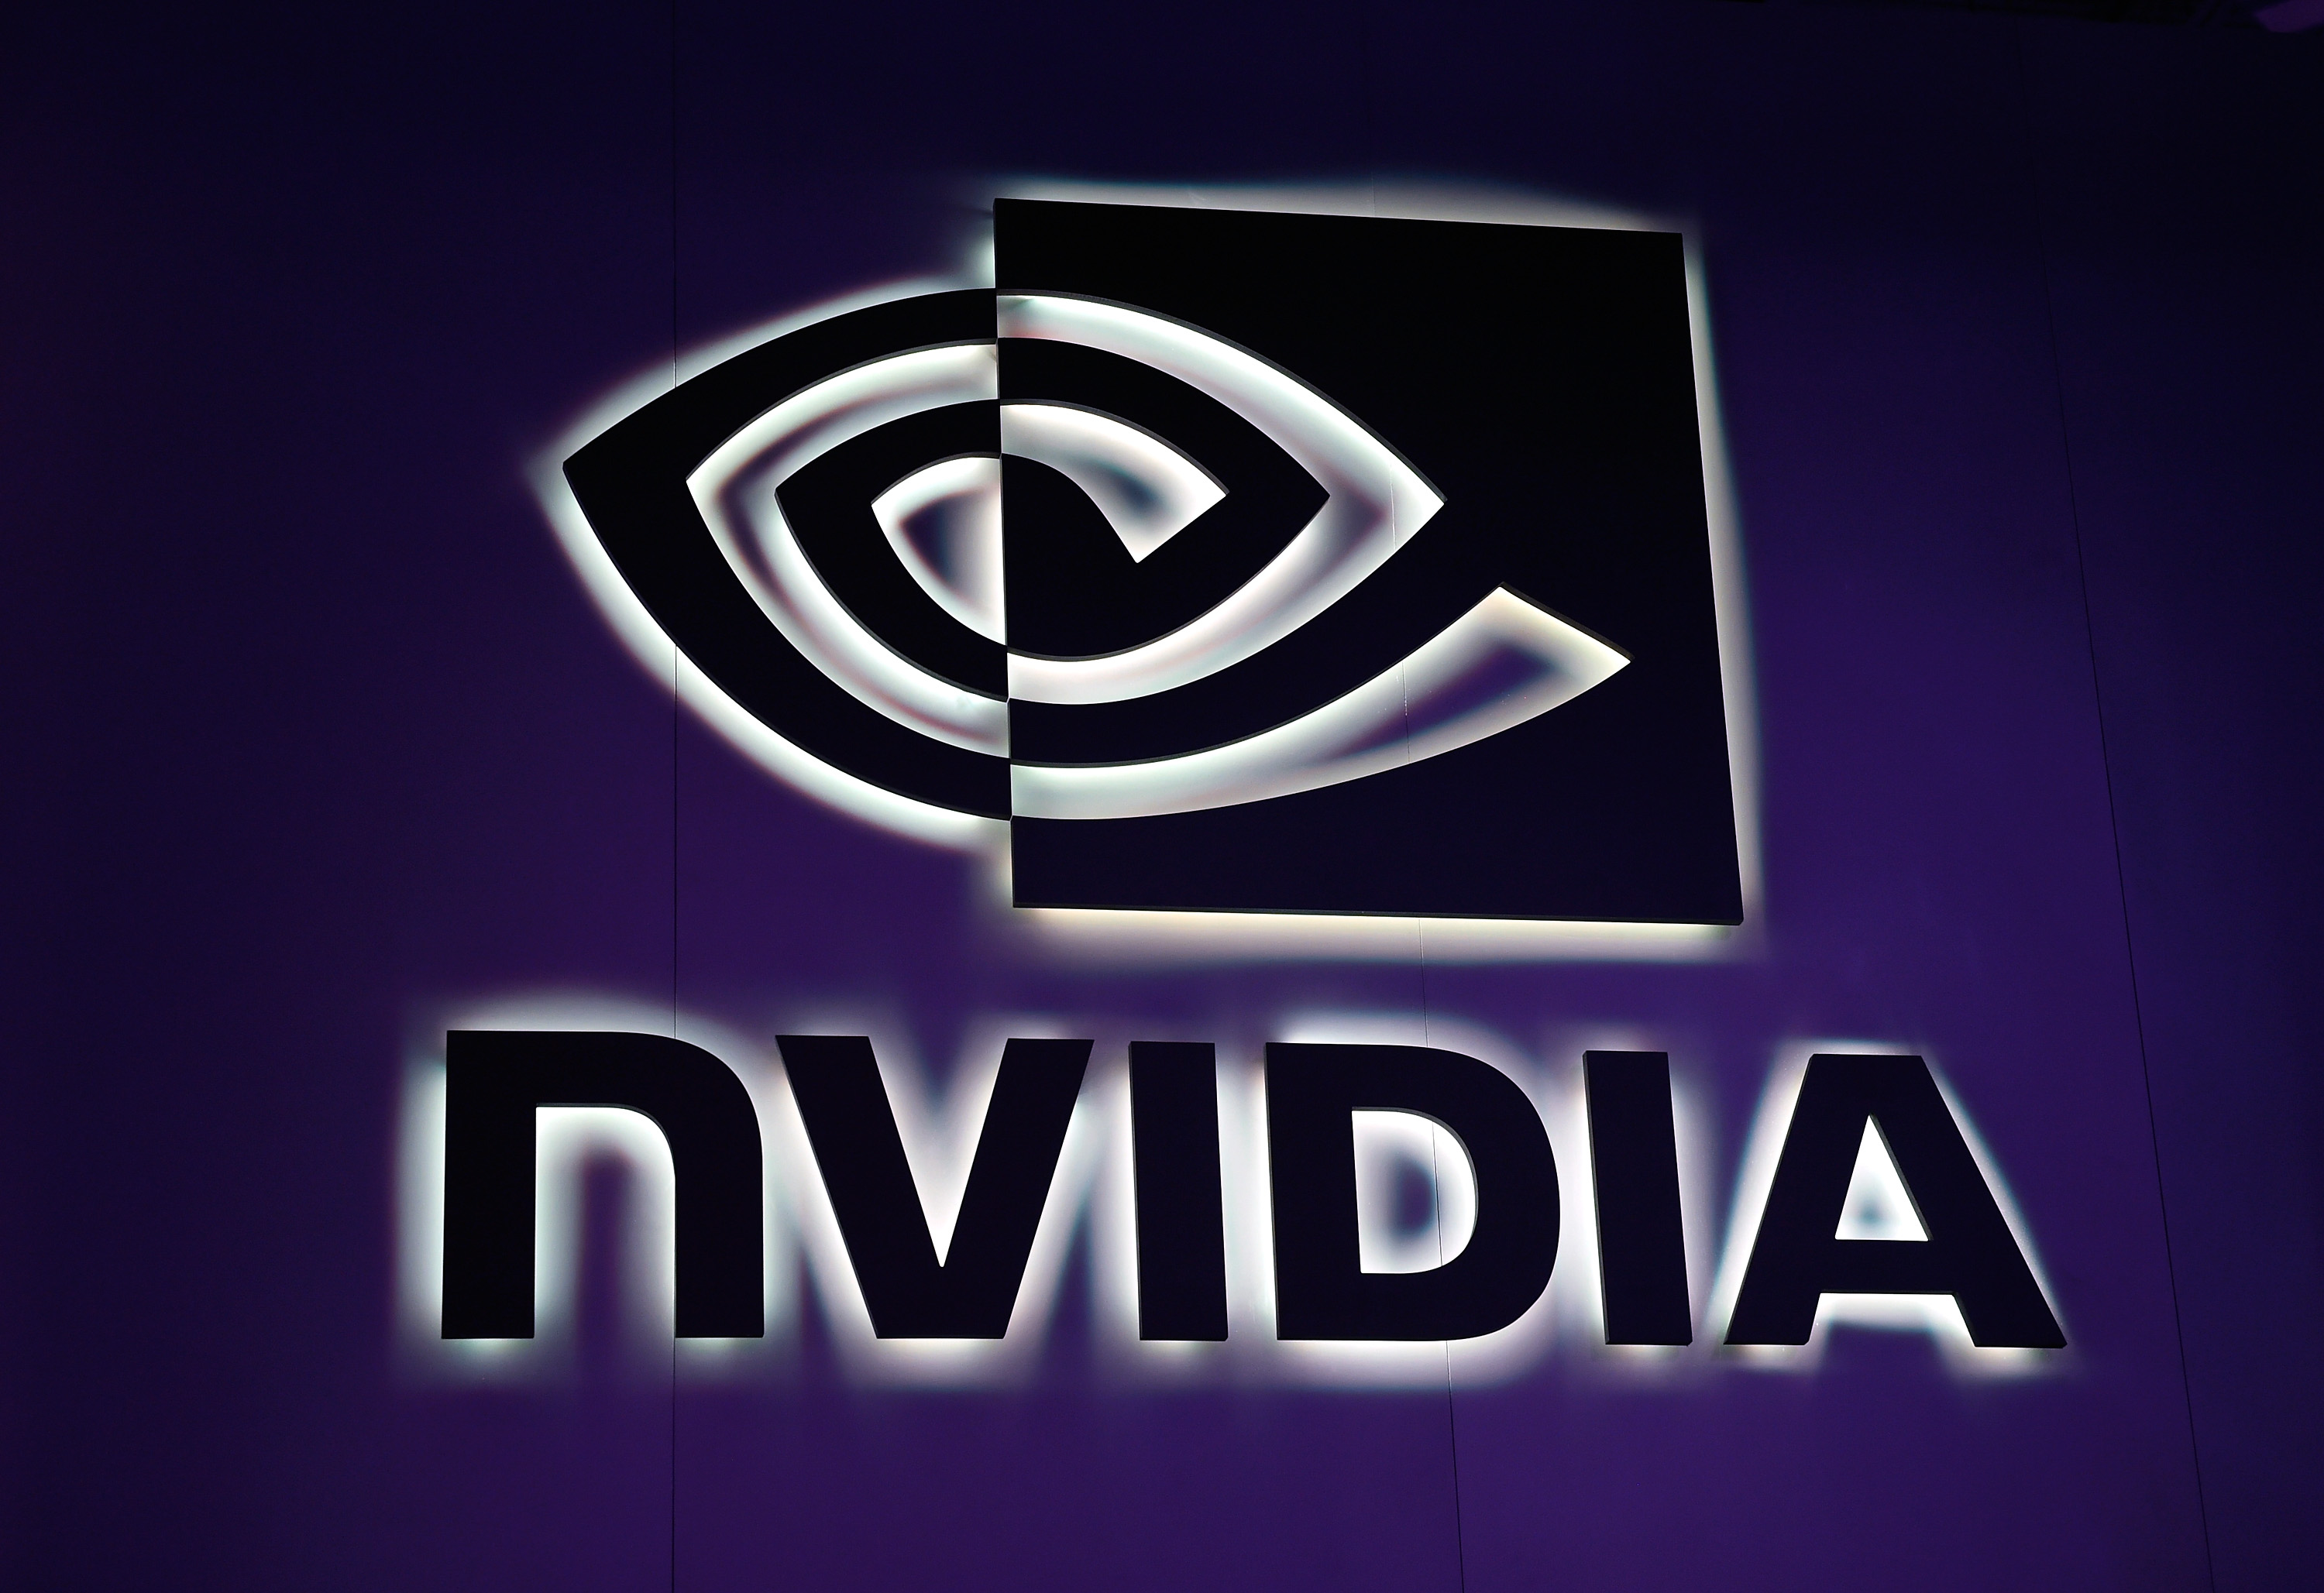 Watch Nvidia's CES press conference right here